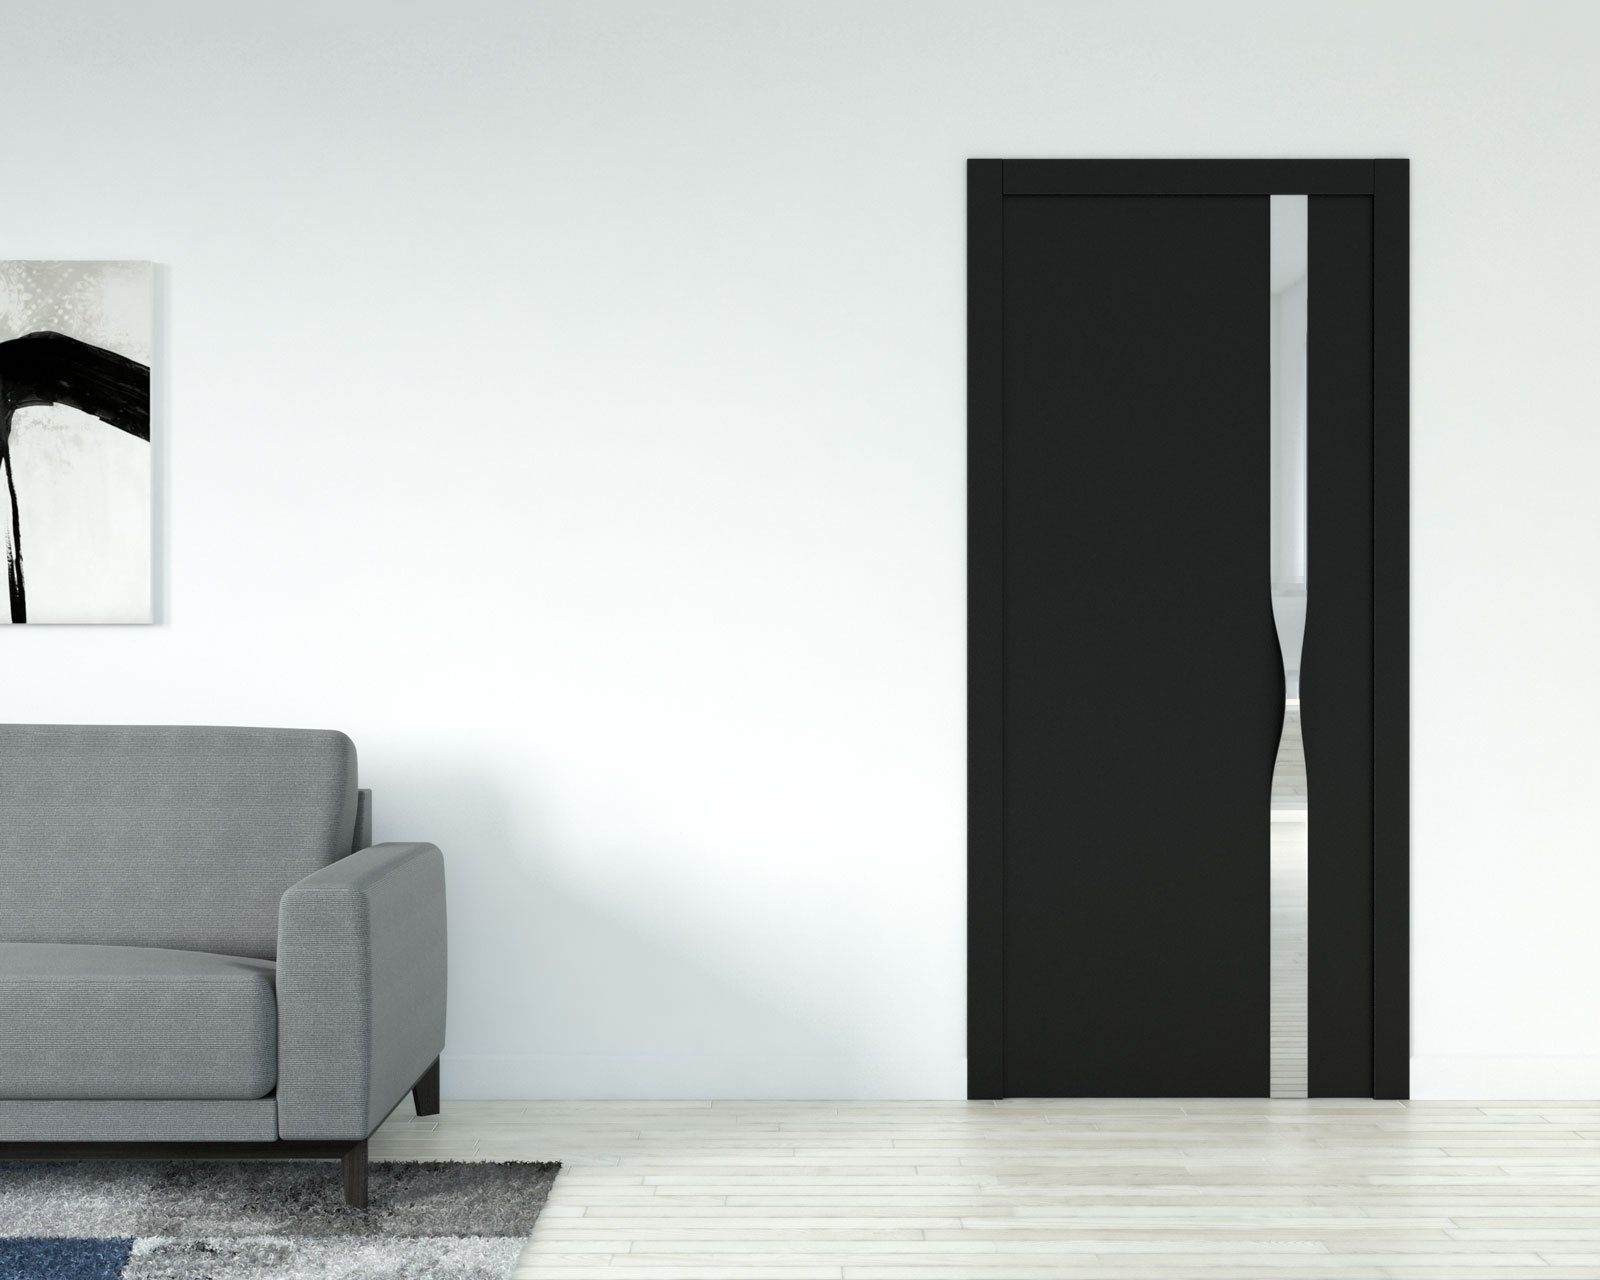 White wall with black door